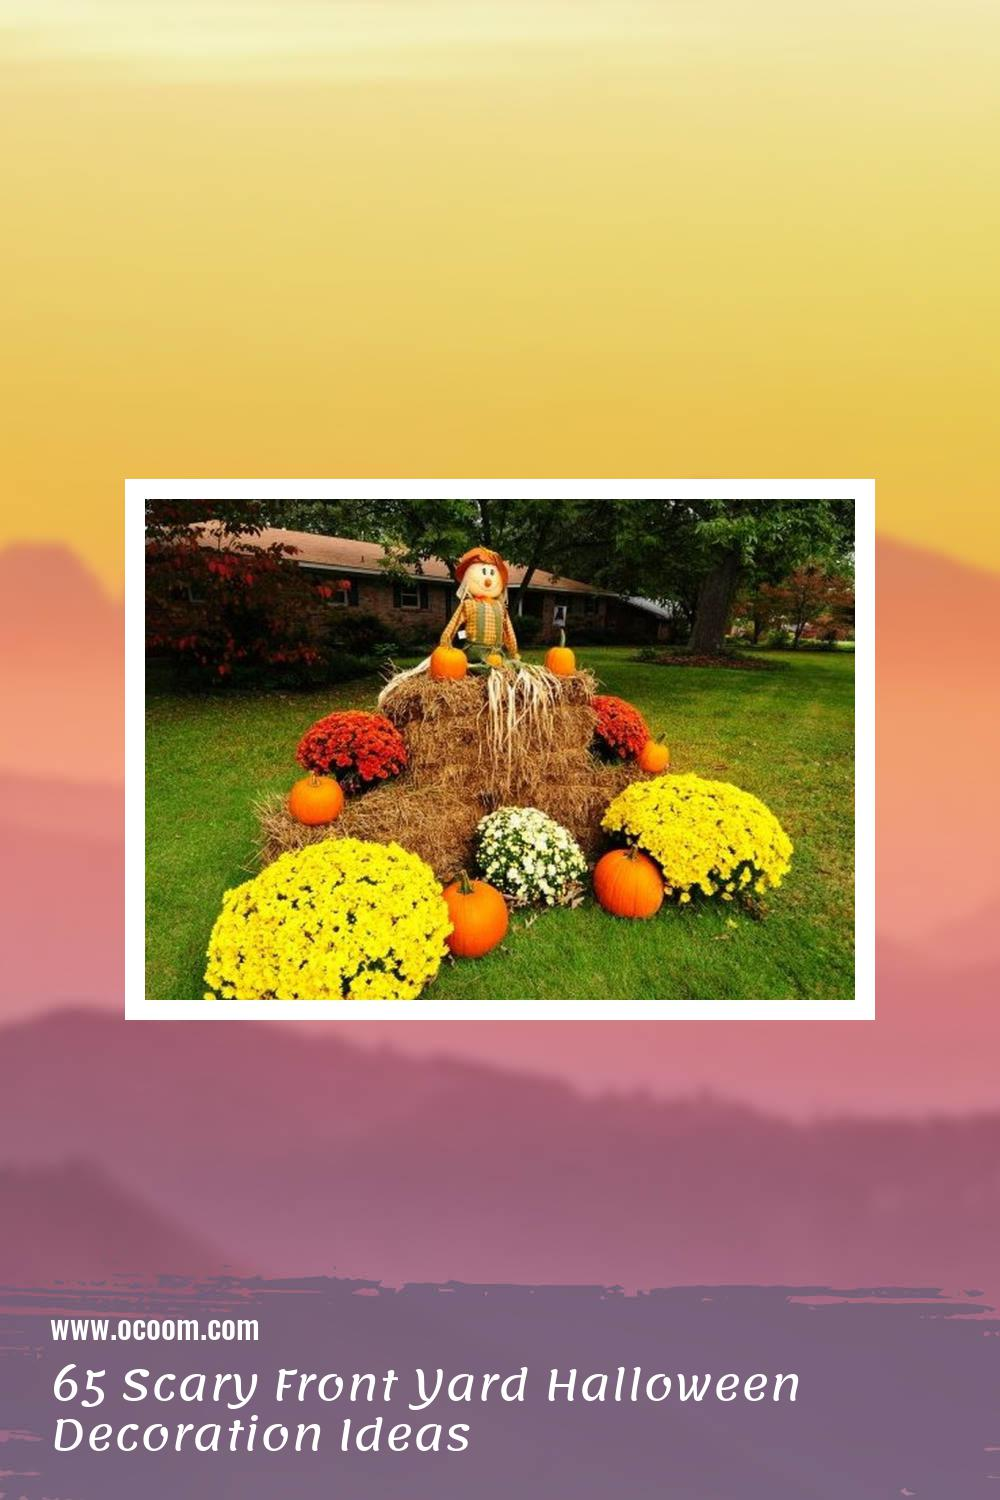 65 Scary Front Yard Halloween Decoration Ideas 2